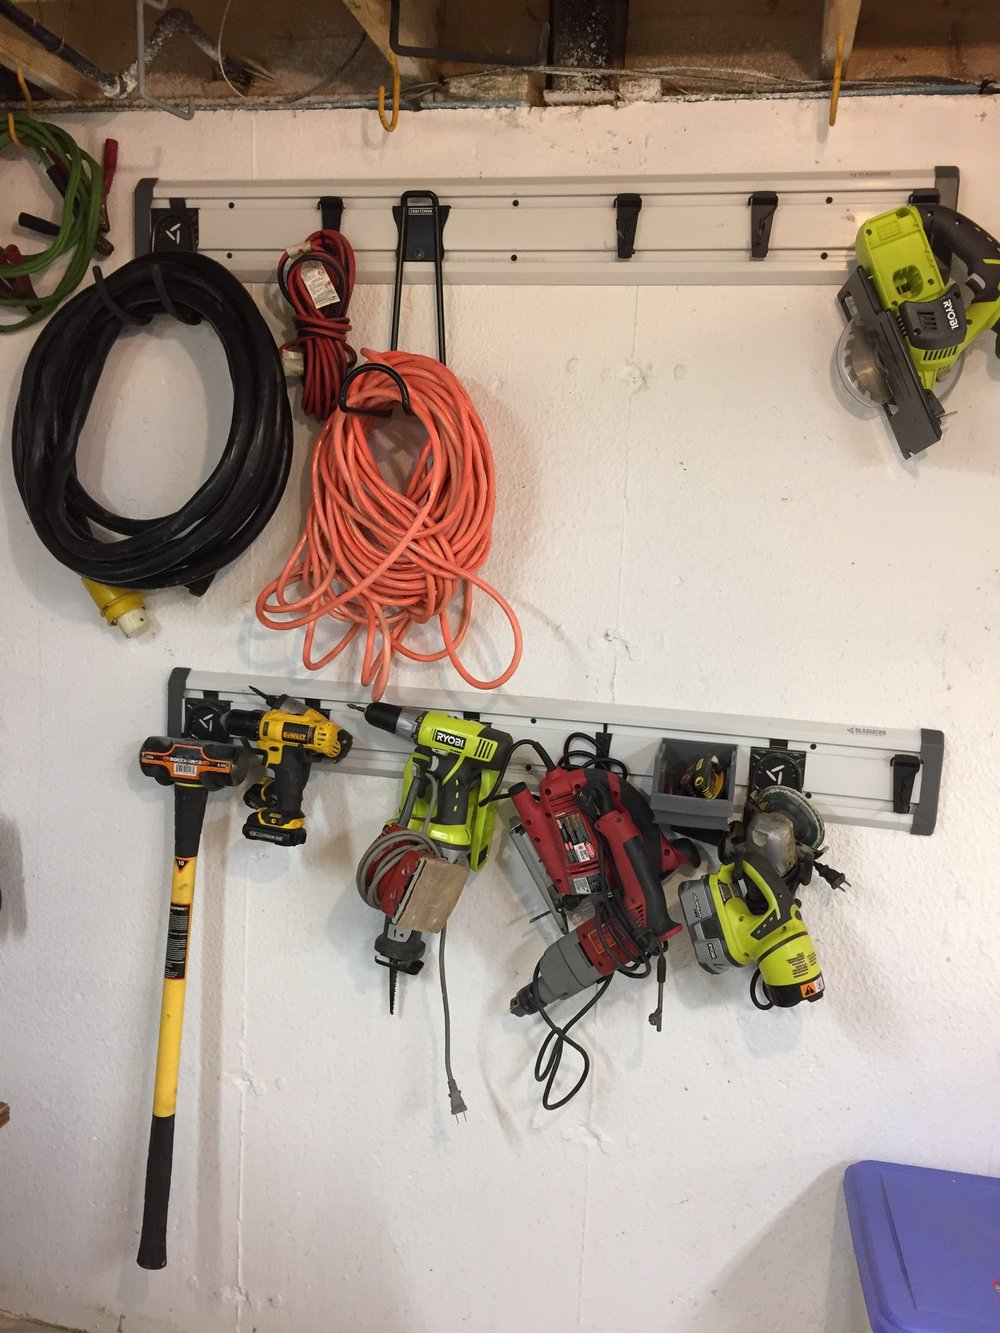 """My power tool wall. It's nice having my most frequently used tools out in the open where I can quickly find them, as opposed to looking through cupboards or drawers. A """"Big Hook"""" with 50 lb capacity easily handles the weight of a sledge hammer."""